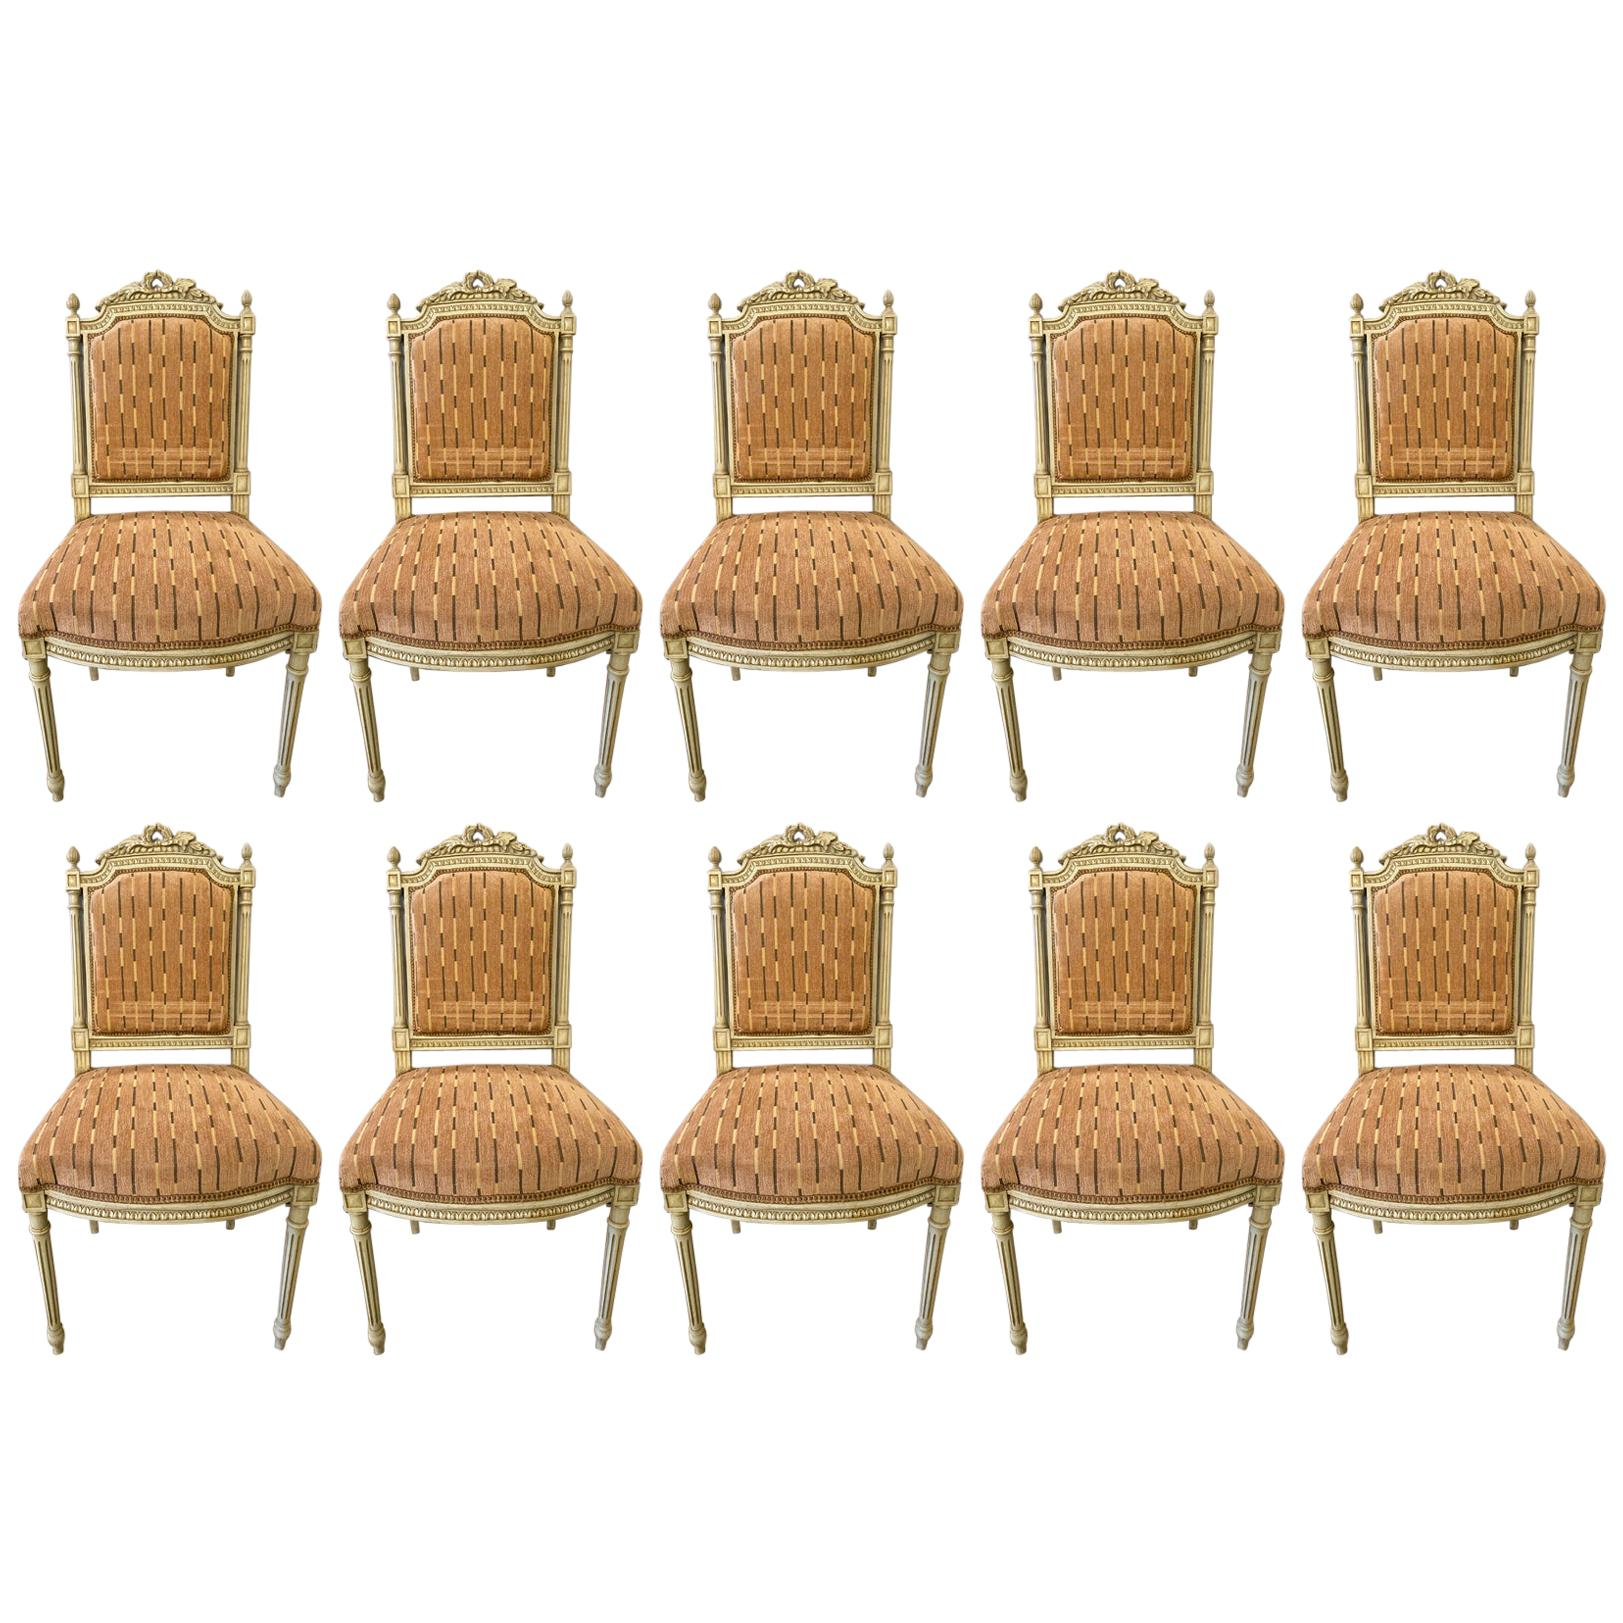 10 Swedish Louis XVI Style Dining / Side Chairs Painted Carved Frames New Fabric